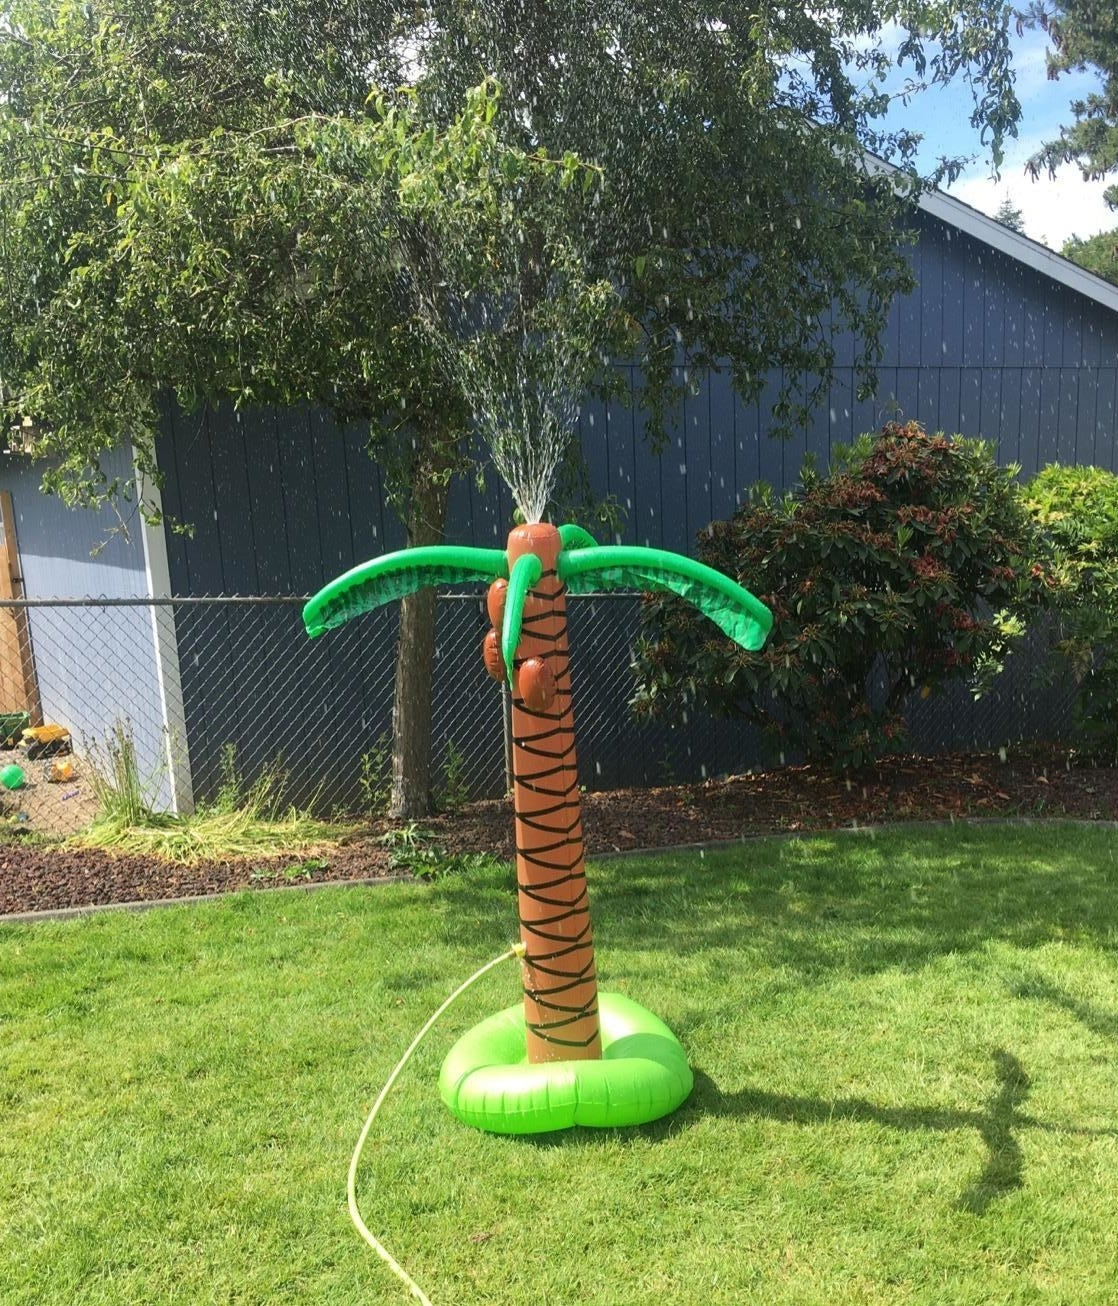 inflatable palm tree with hose attached spraying water out its top